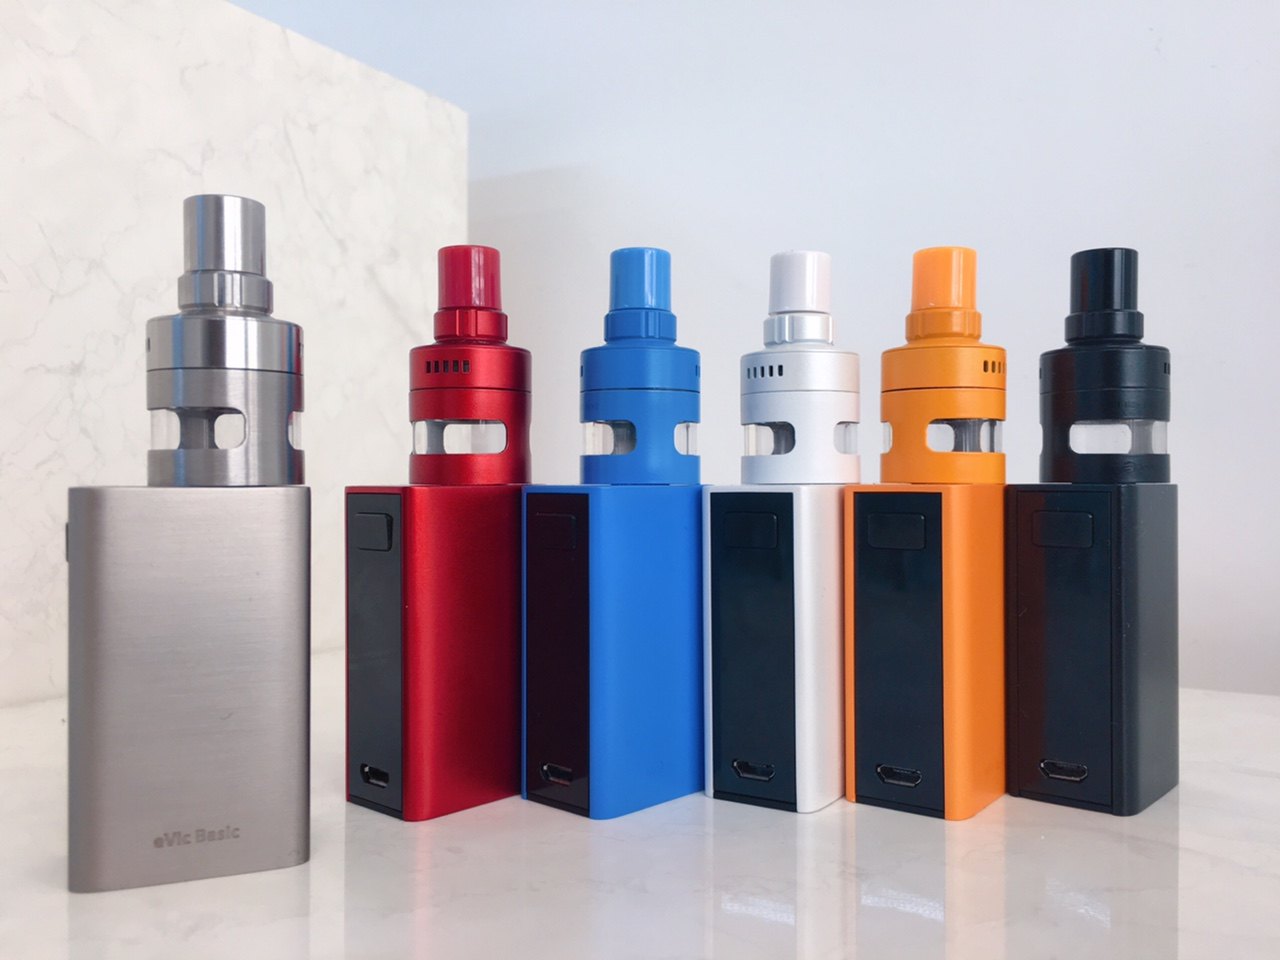 evic Basic with Cubis Pro Mini